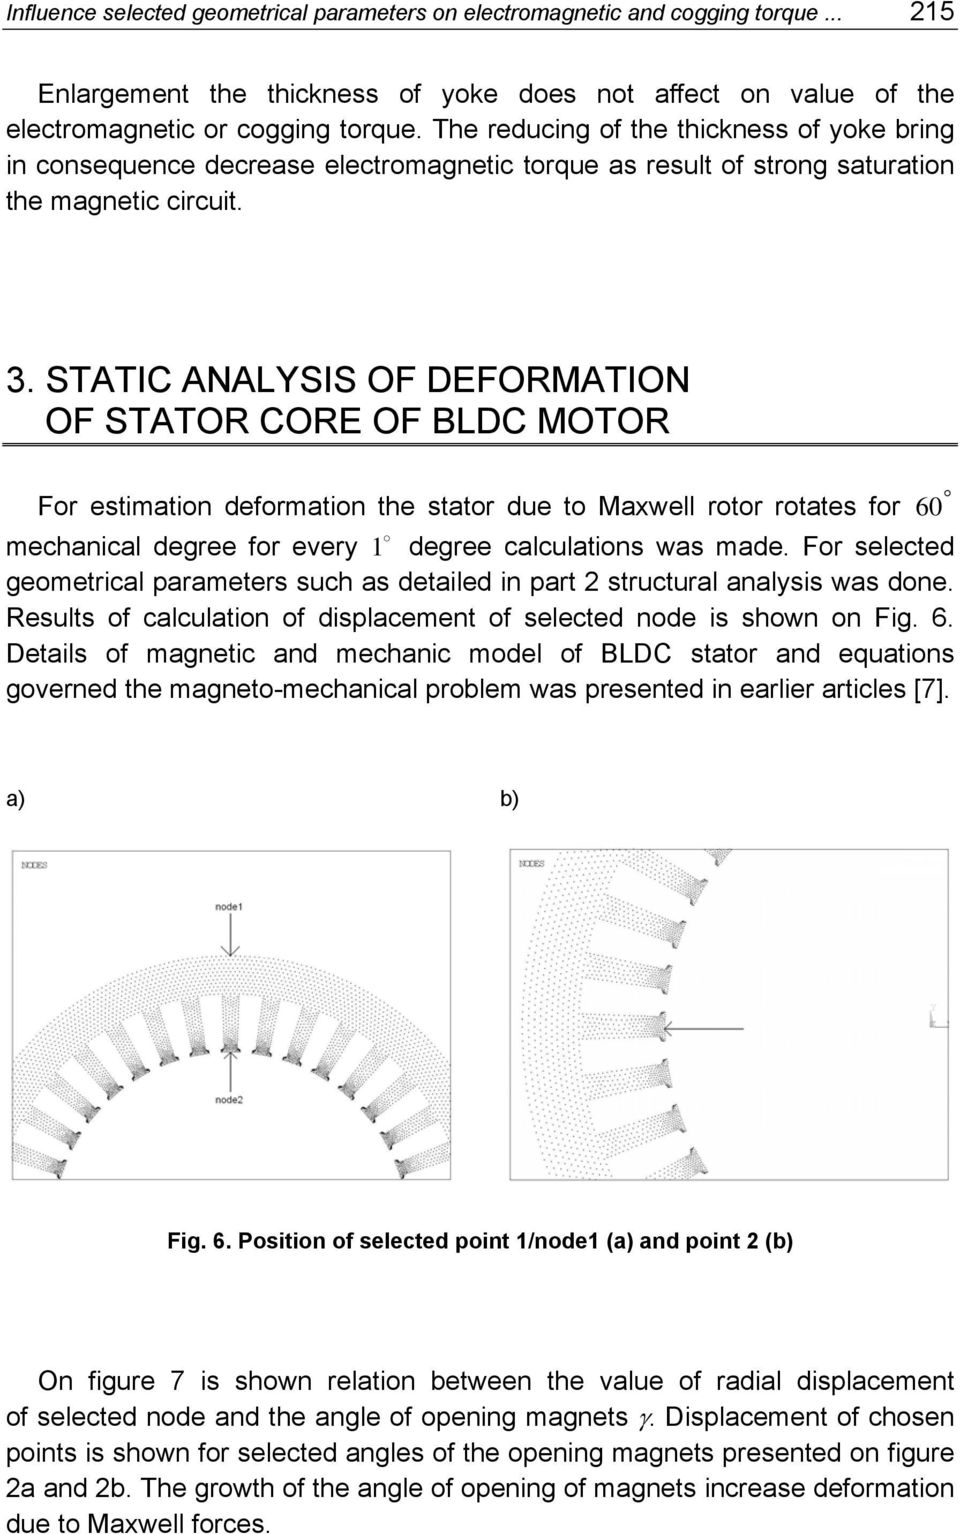 STATIC ANALYSIS OF DEFORMATION OF STATOR CORE OF BLDC MOTOR For estimation deformation the stator due to Maxwell rotor rotates for 60 mechanical degree for every 1 degree calculations was made.